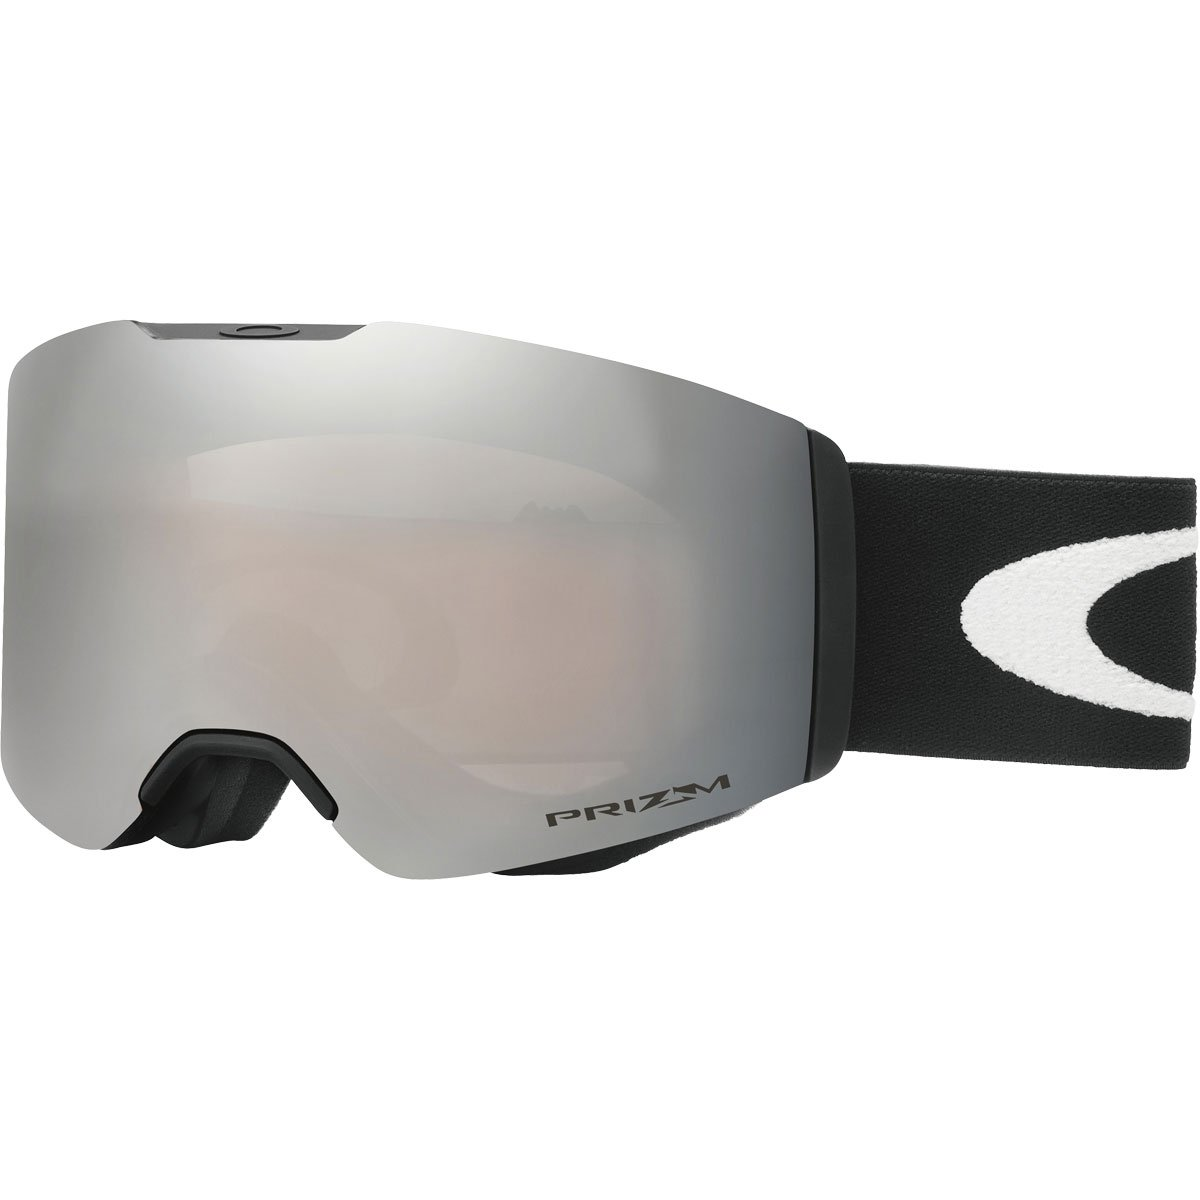 Oakley Fall Line Snow Goggles, Matte Black Frame, Prizm Black Iridium Lens, Medium by Oakley